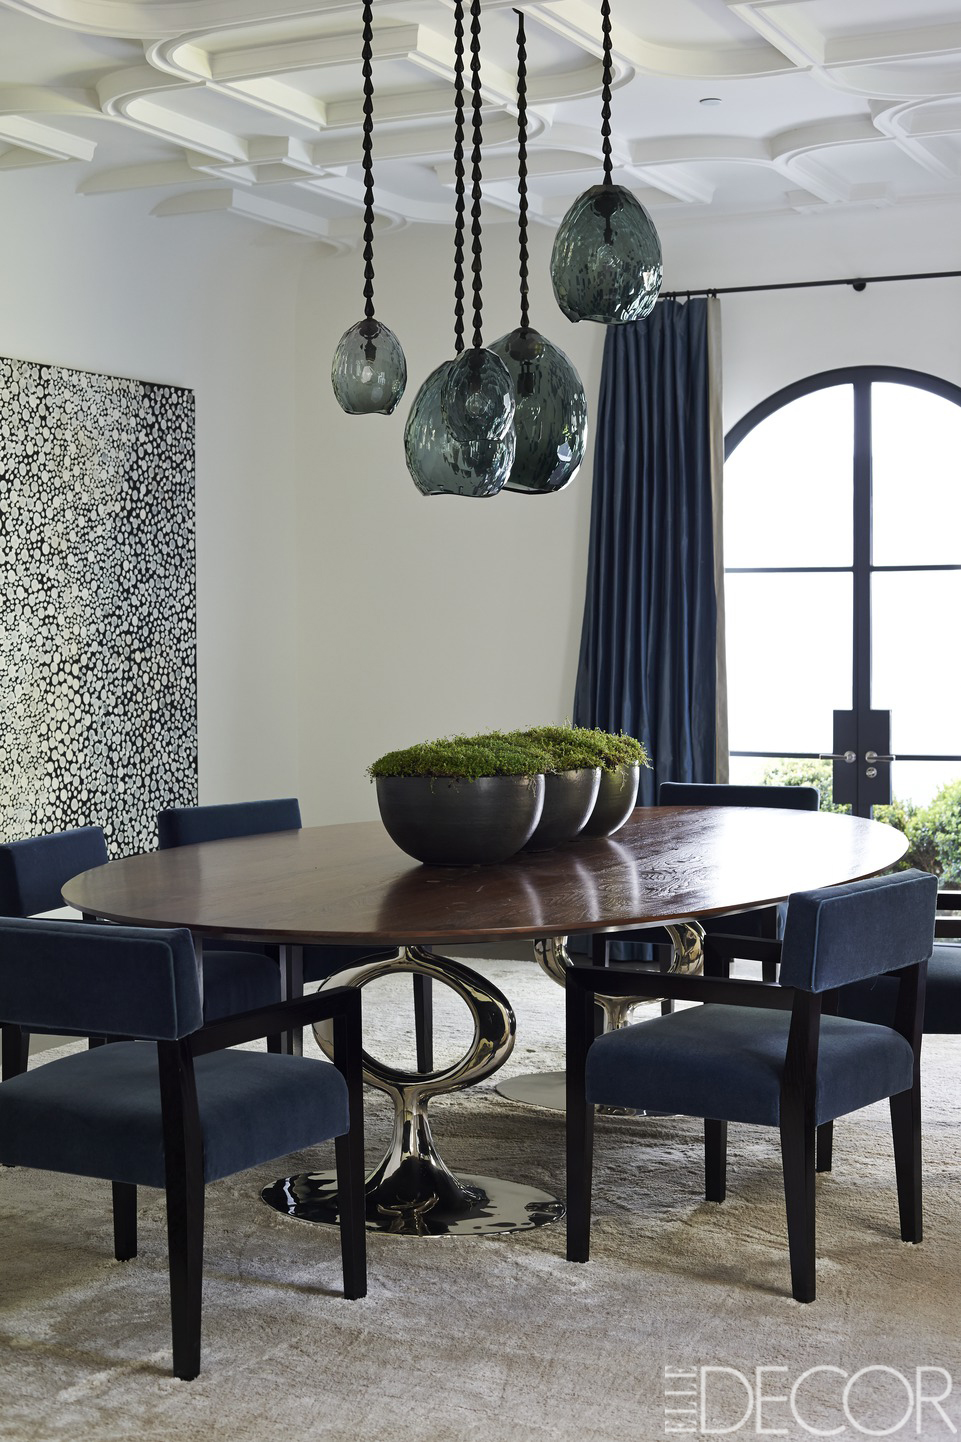 25 modern dining room decorating ideas - contemporary dining room furniture IDXTLAL